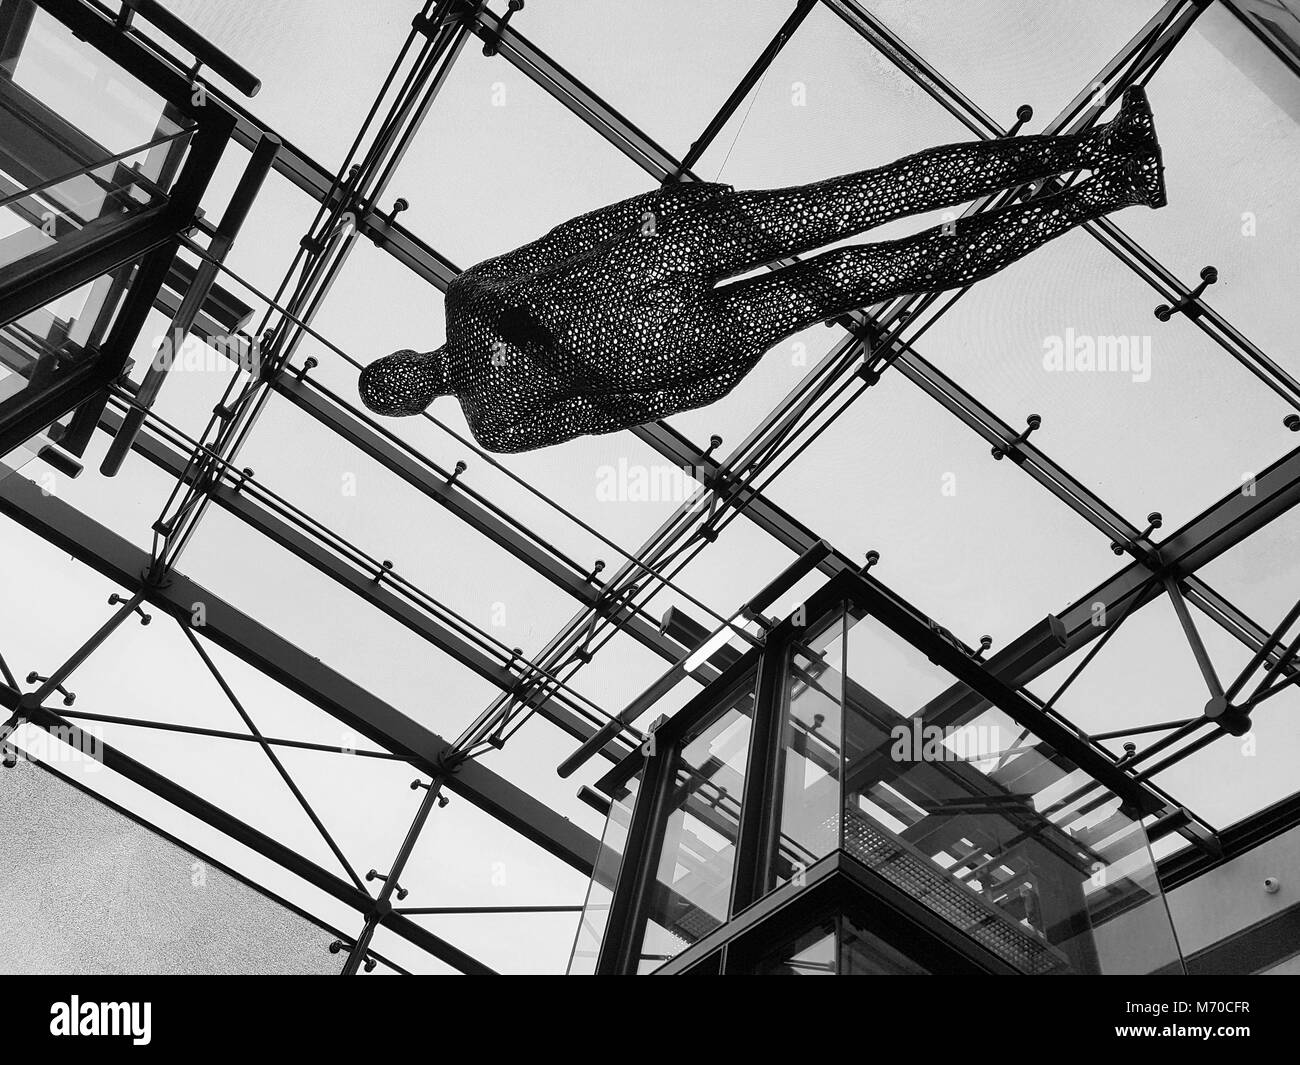 Manchester, United Kingdom - February 8, 2018: Antony Gormley's 'Filter' Sculpture on display in the - Stock Image